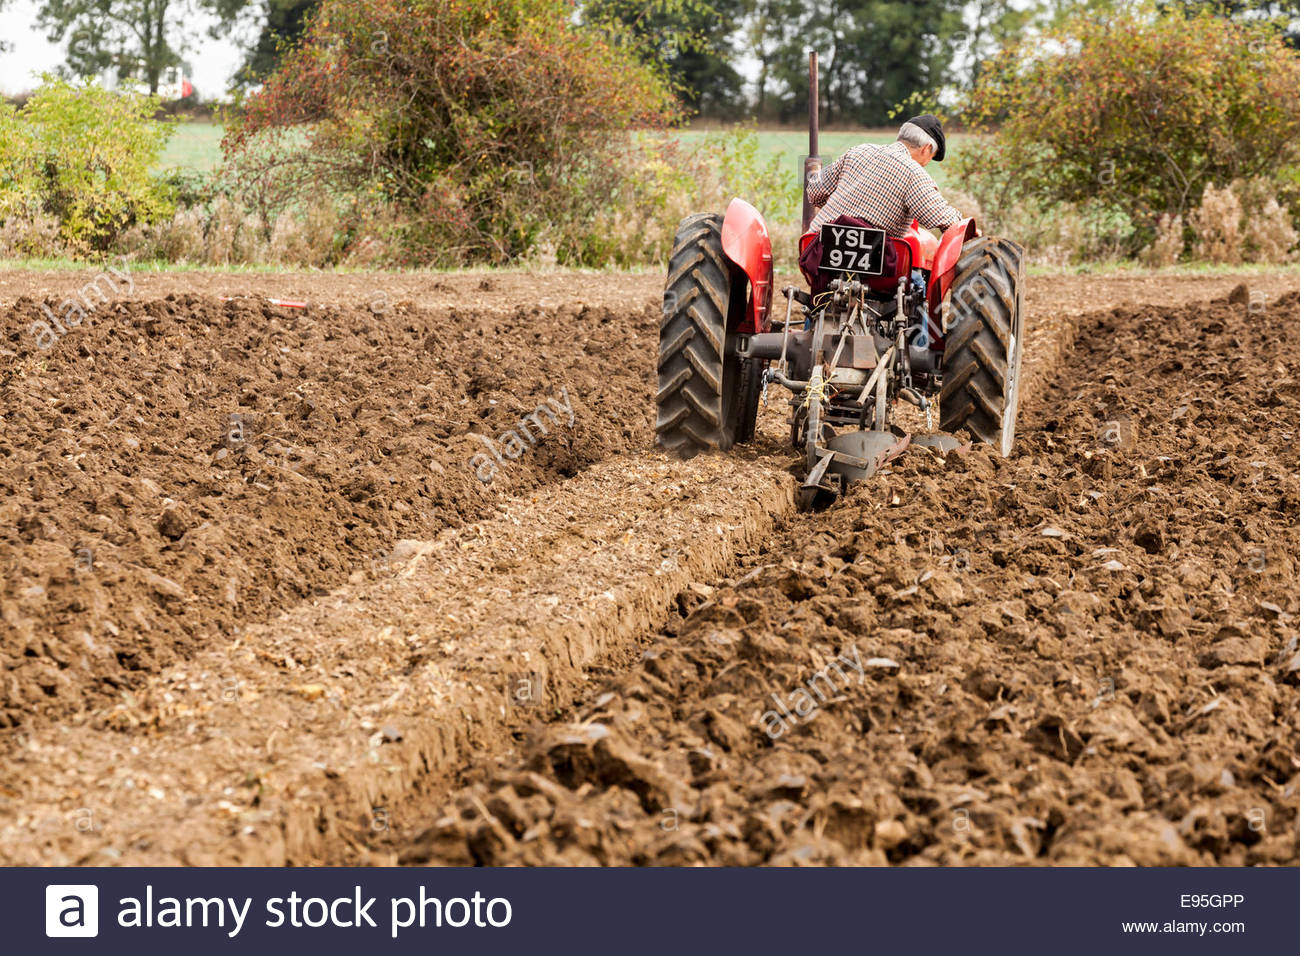 Old fashioned tractor ploughing a field - Stock Image